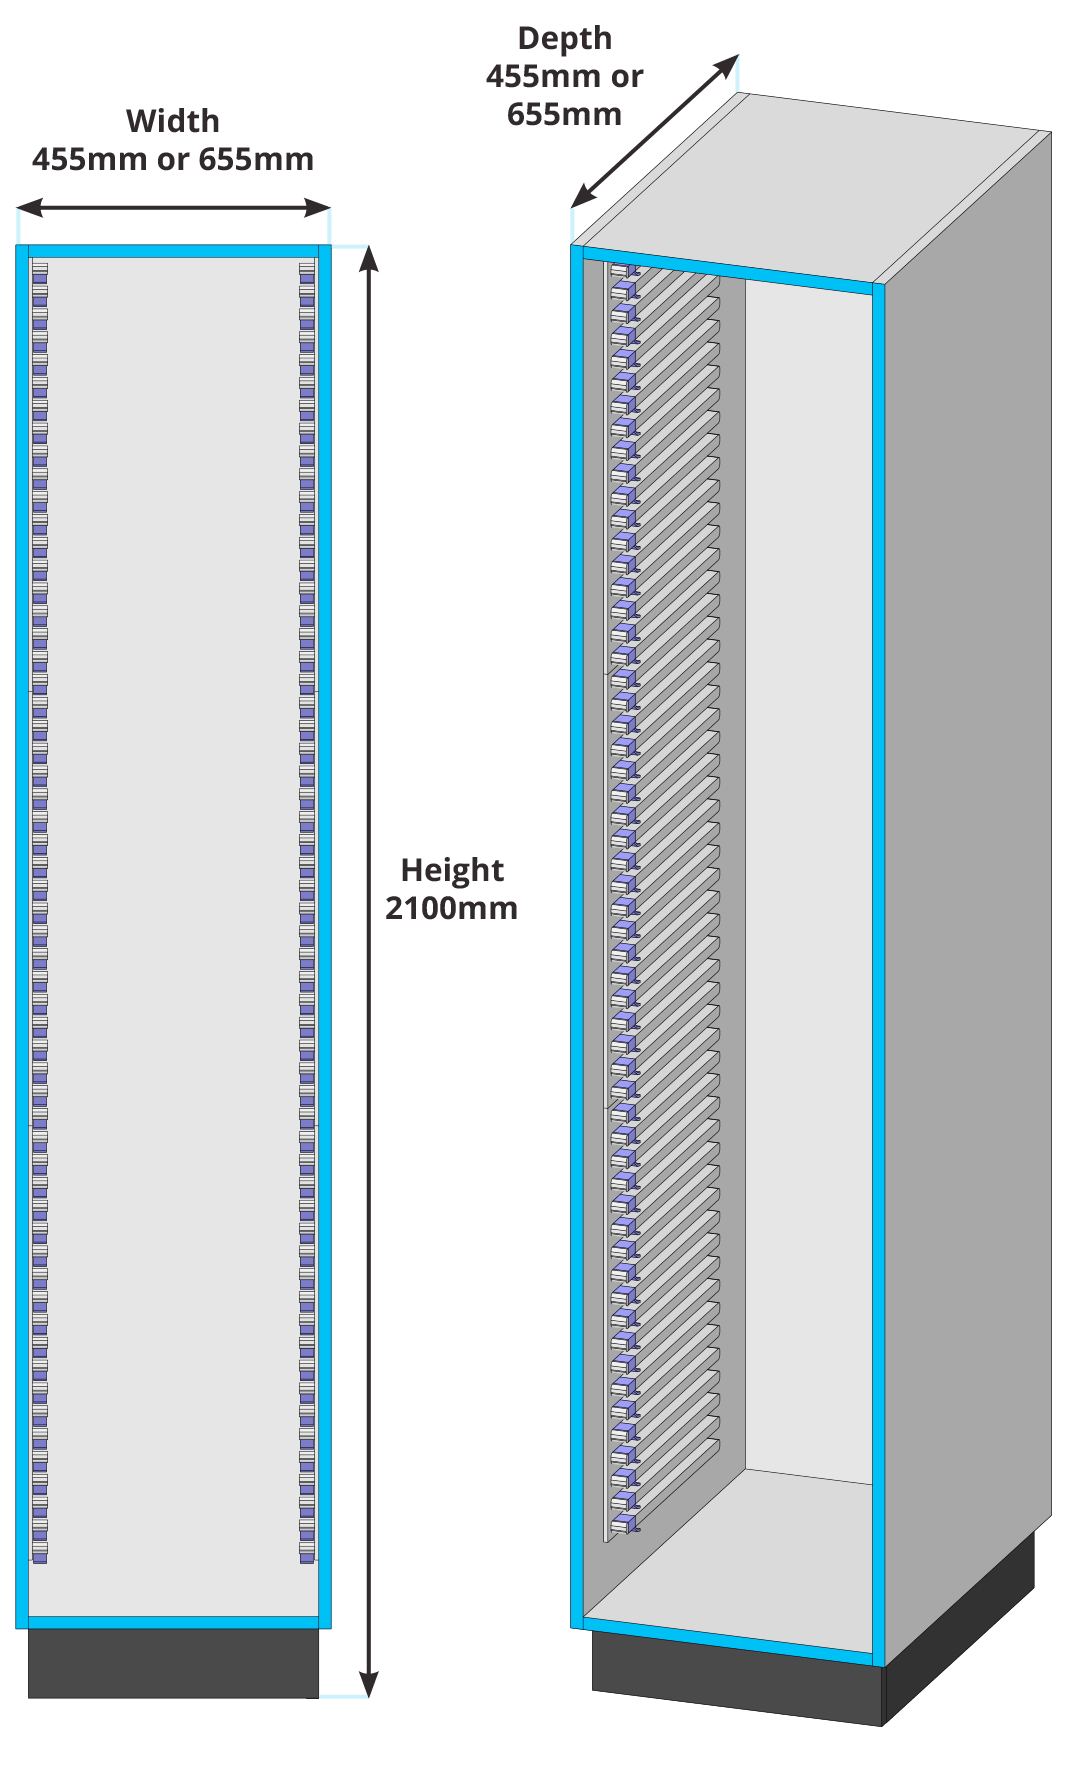 HTM71 Full Height Unit Drawing